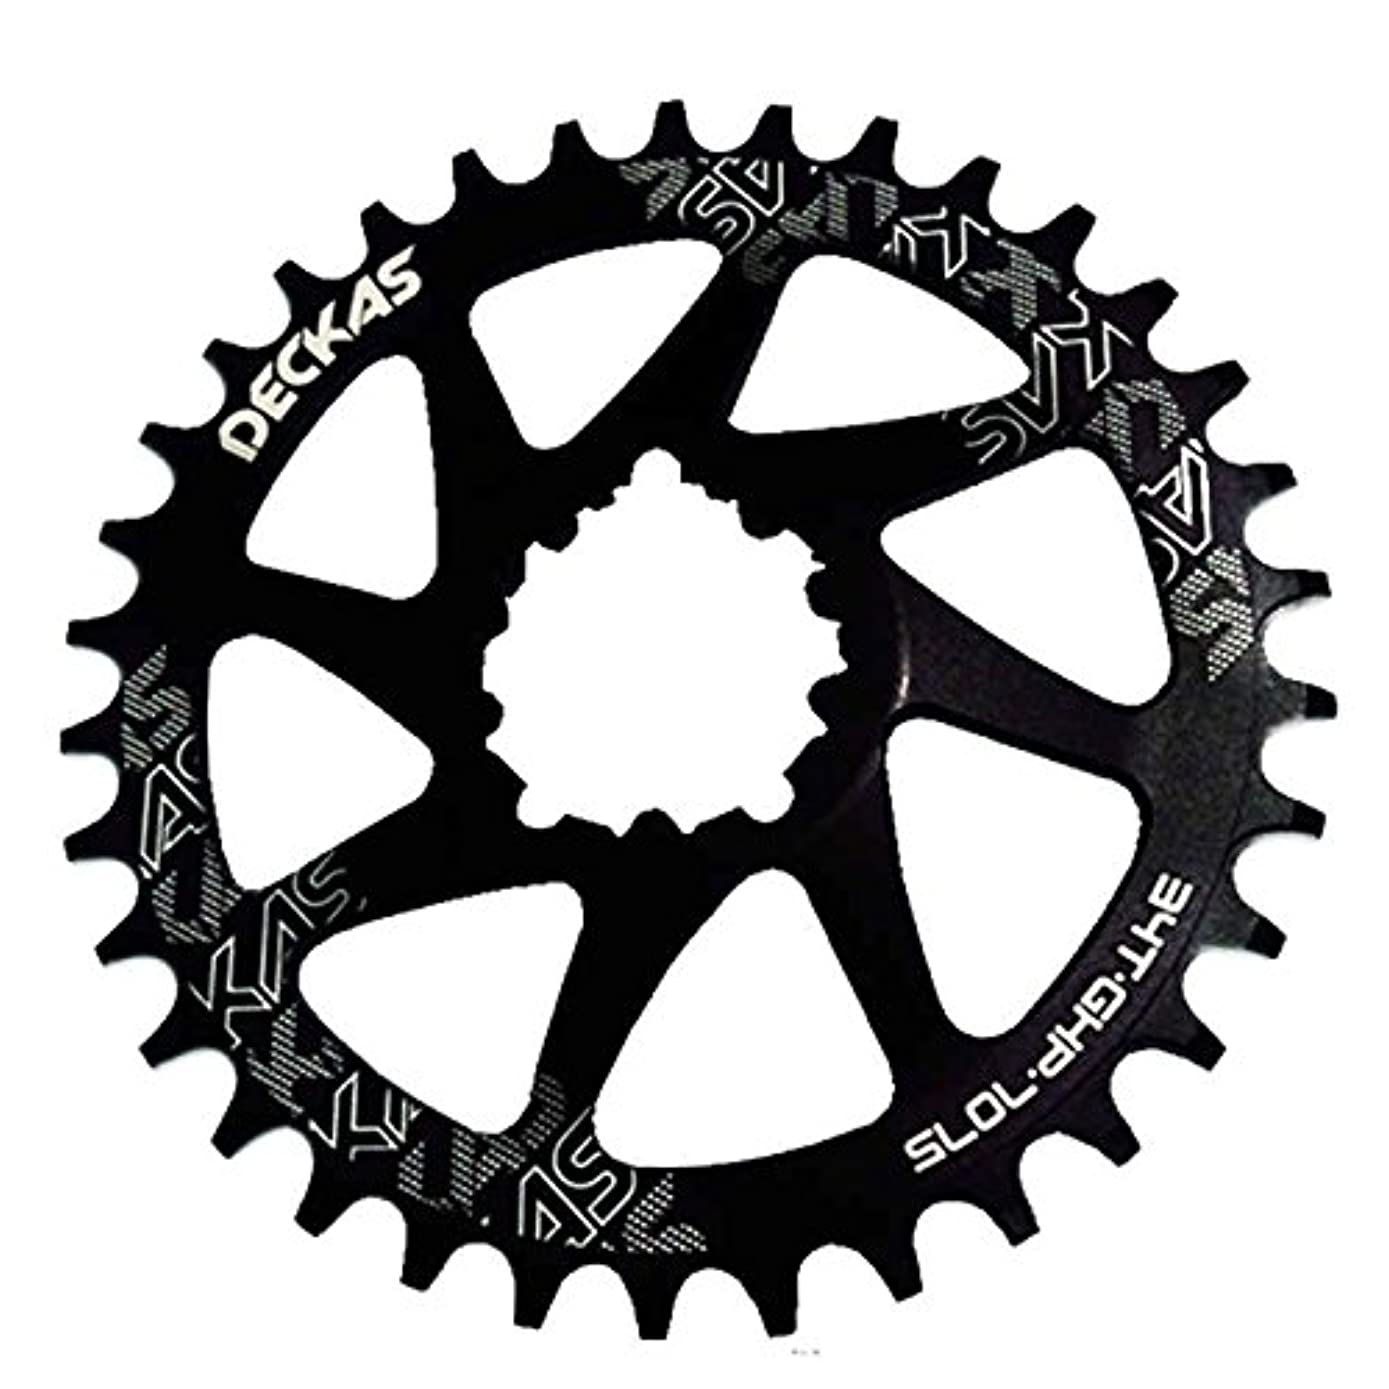 ペースフルーツ羽Propenary - GXP bicycle crankset Al 7075 CNC32T 34T Narrow Wide Chainring Chainwheel for Sram XX1 XO1 X1 GX XO X9 crankset bicycle parts [ 38T Black ]